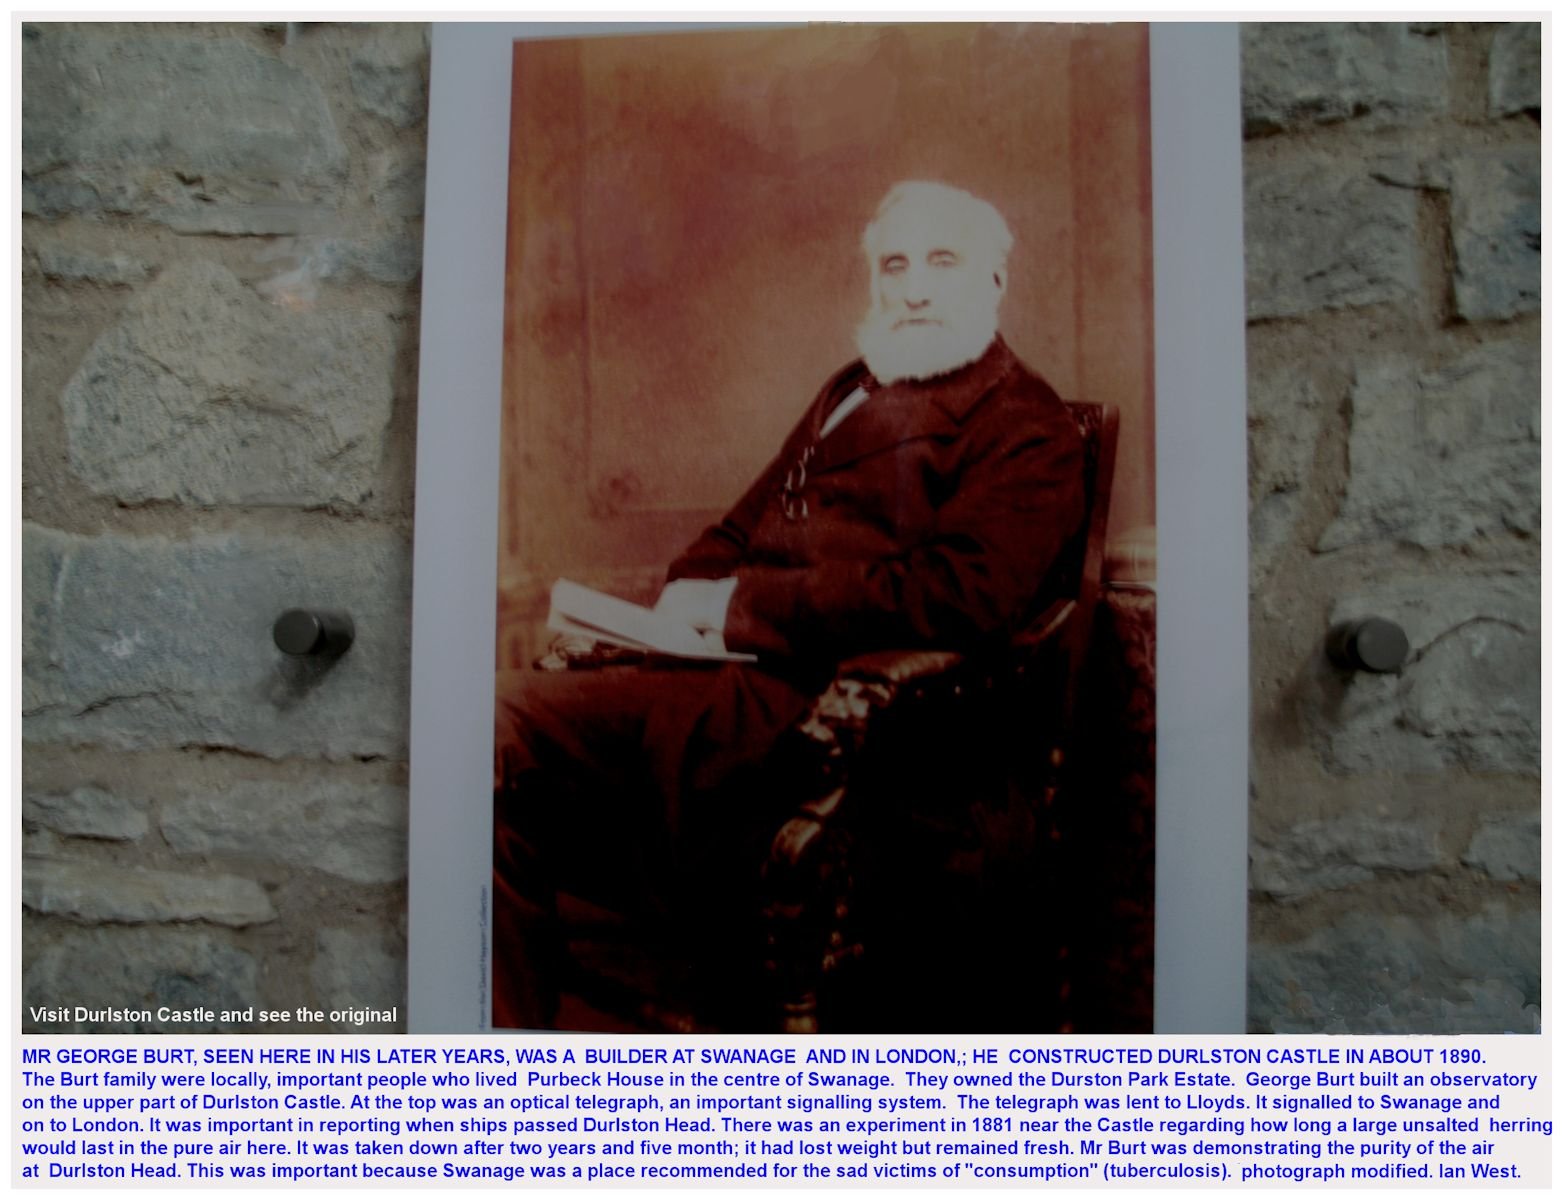 Mr George Burt of Swanage, who built Durlston Castle in about 1890, seen here in his later years, the picture is in the castle, recommended as a very good place to visit